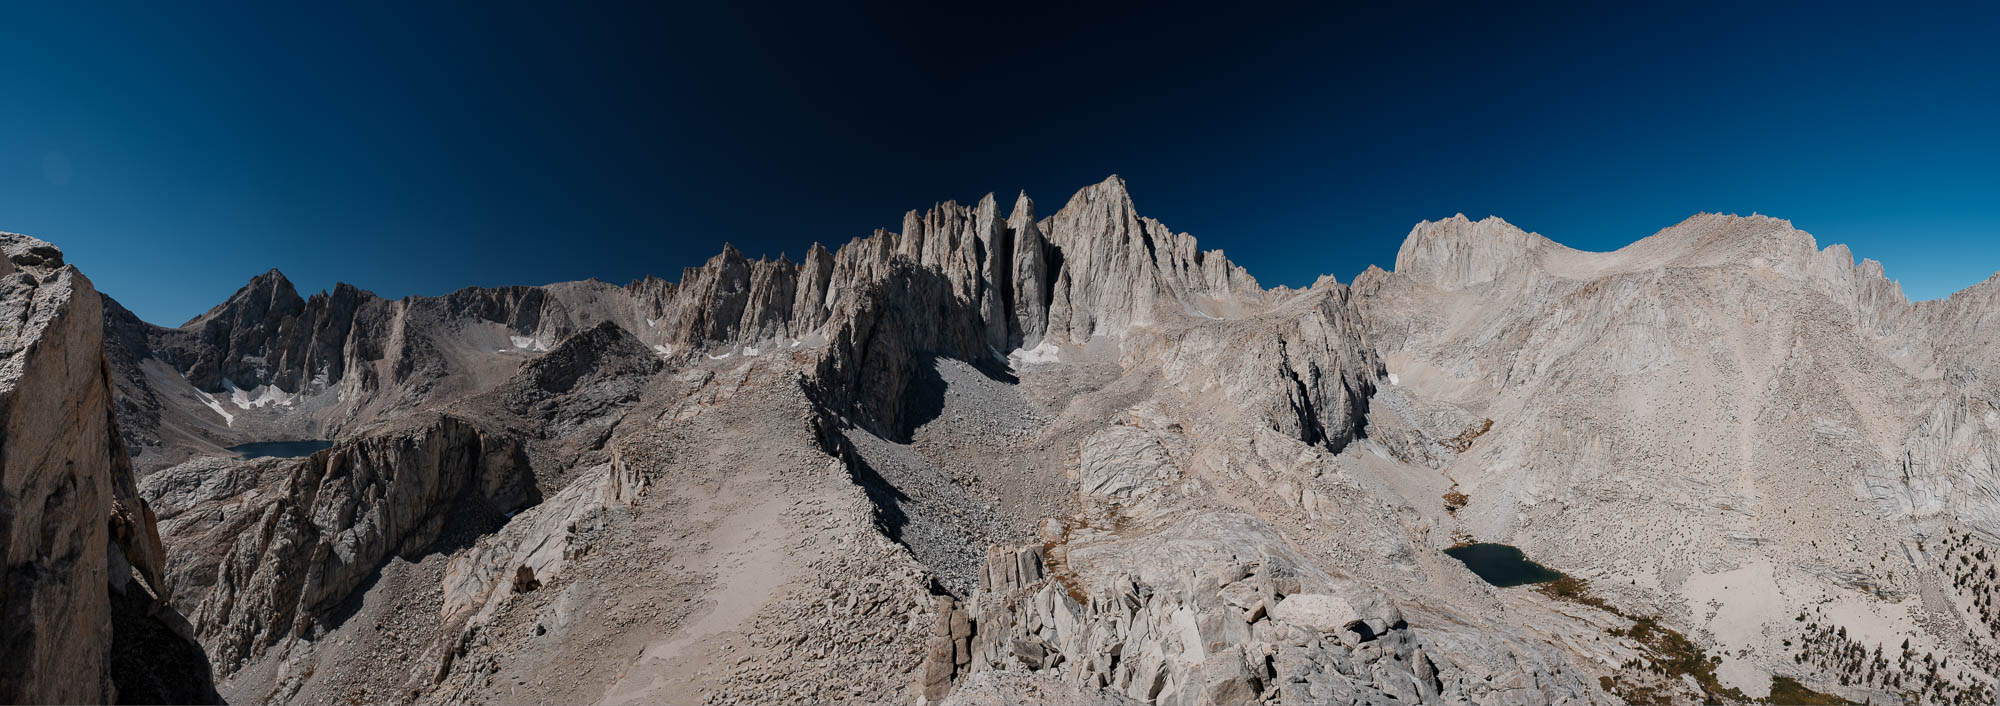 The unobstructed view of Mt Whitney from the Summit of Thor Peak